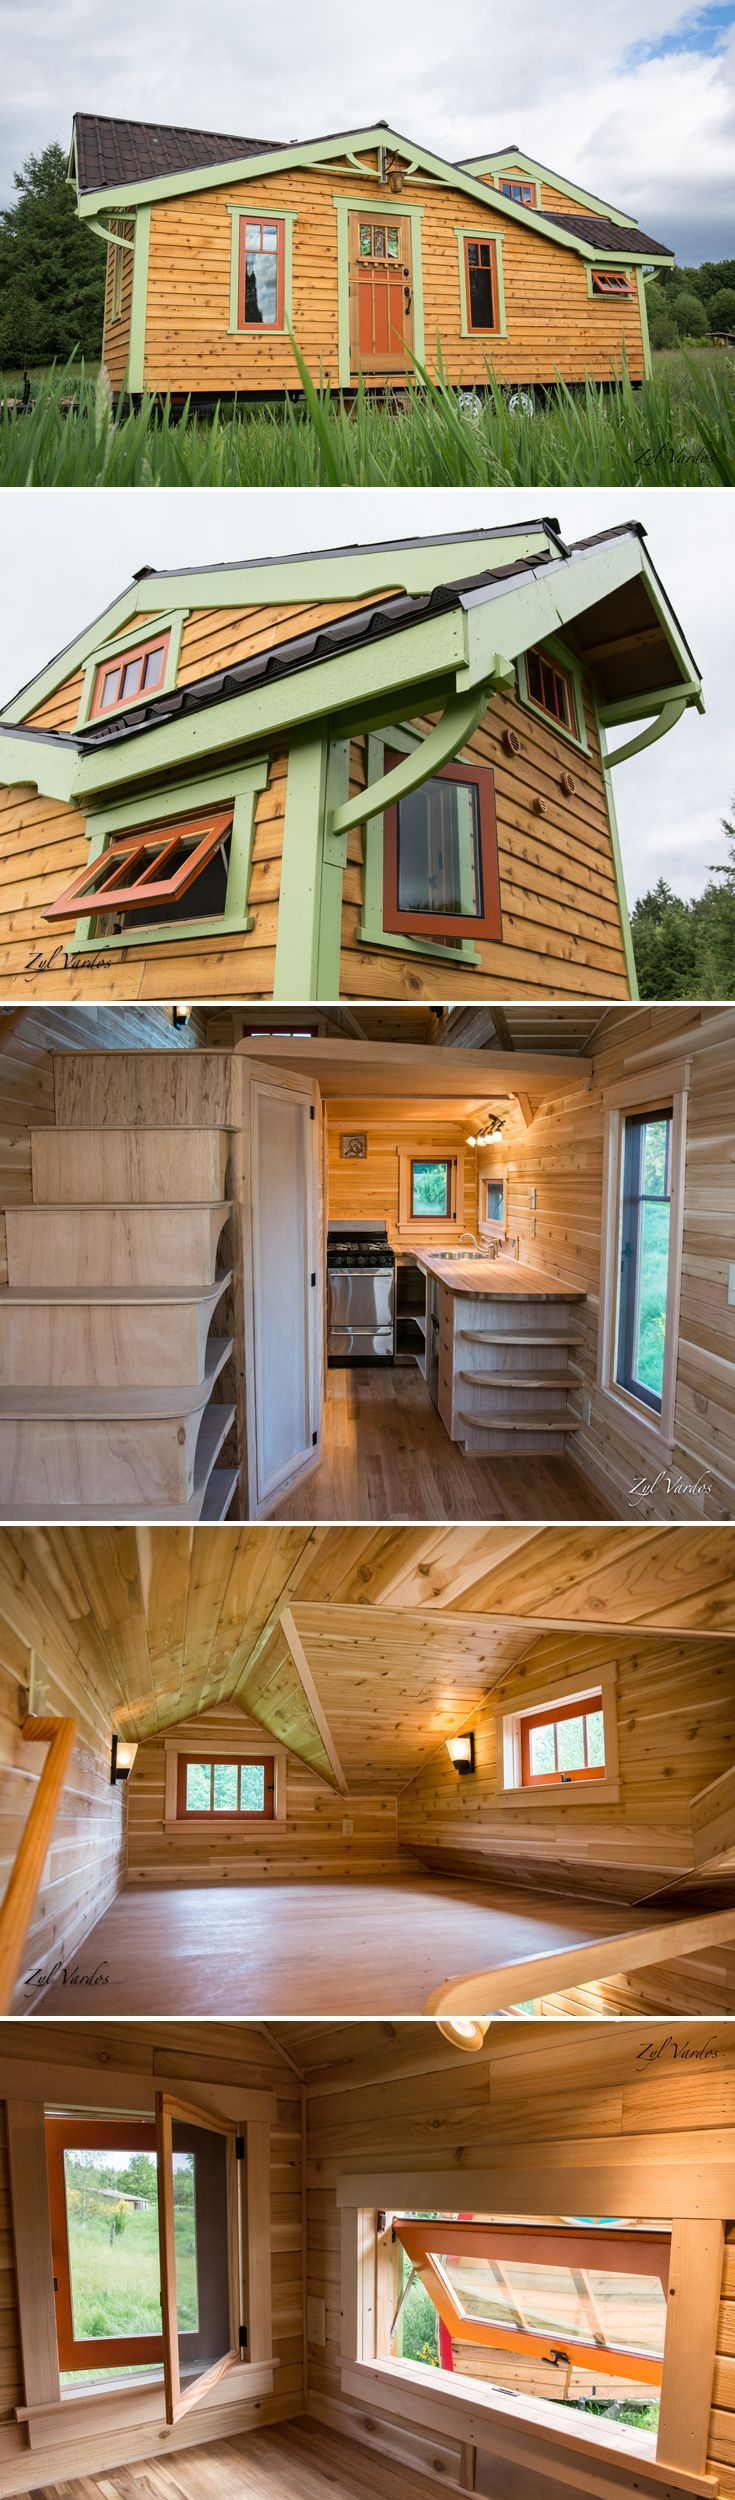 A beautifully designed craftsman style tiny house by Zyl Vardos, the Fuchsia features a dutch door with stained glass and a unique roofline.